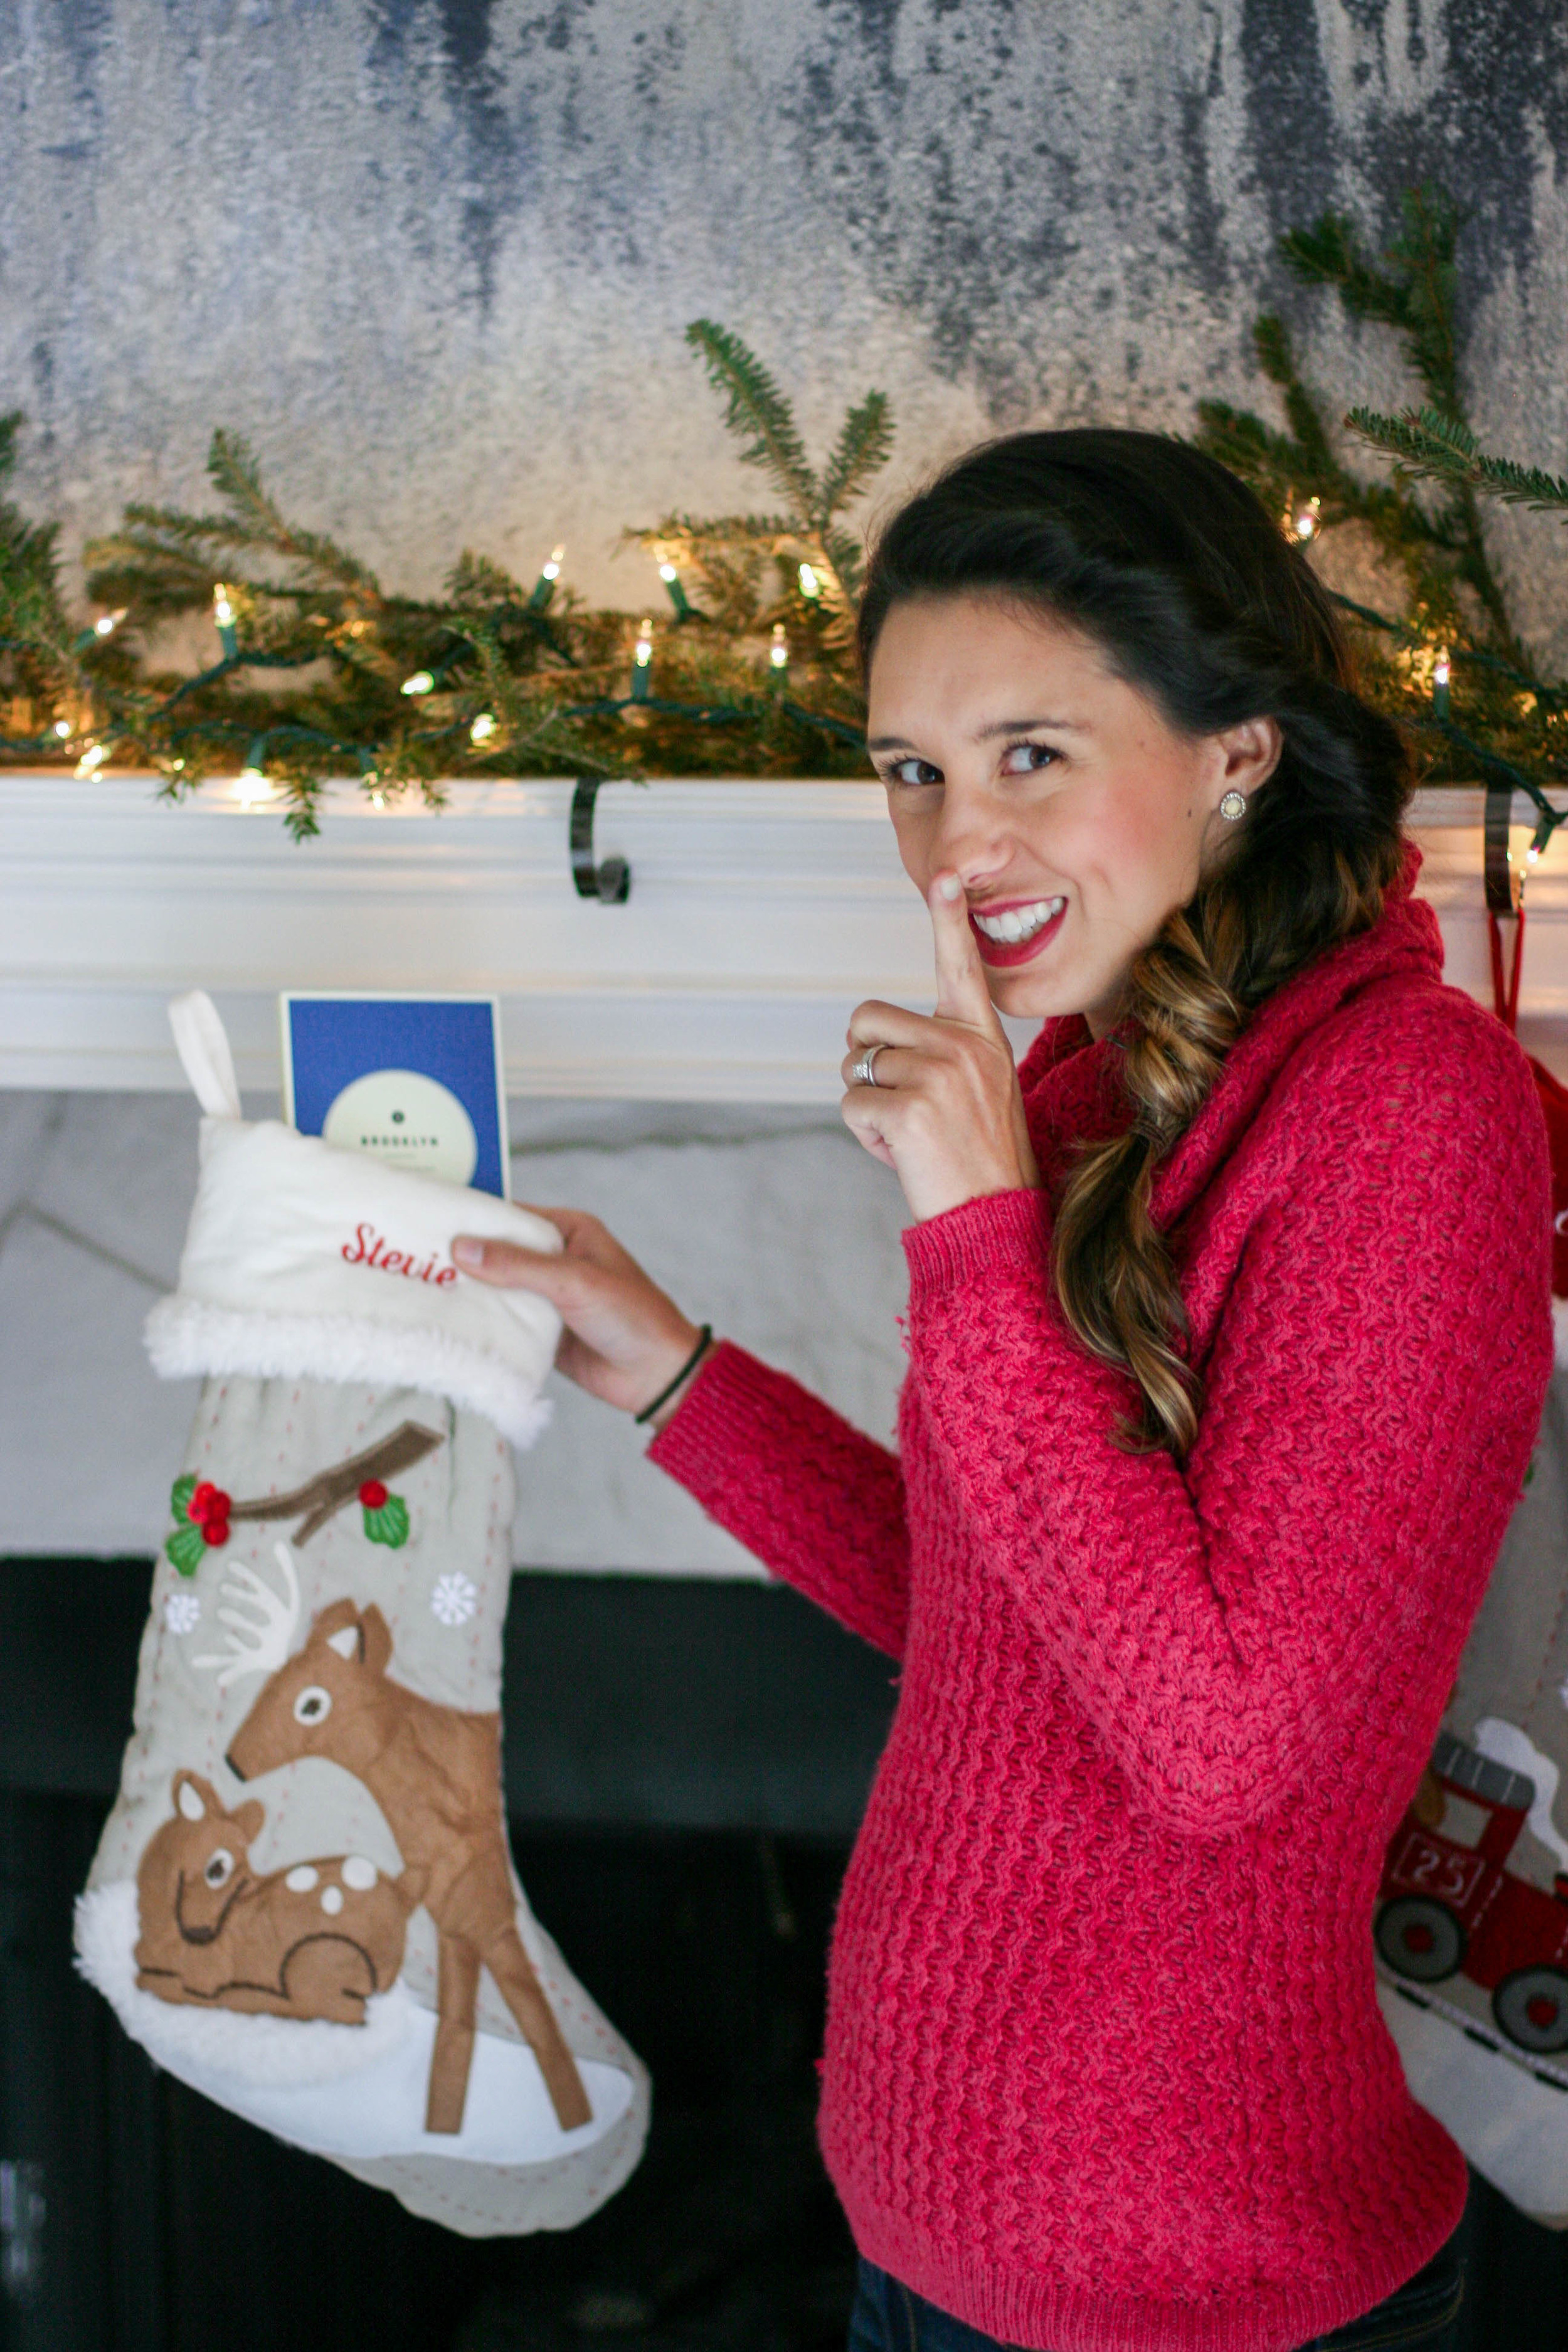 Shhhhhh! Stevie doesn't know that the stockings actually have gifts in them yet :)